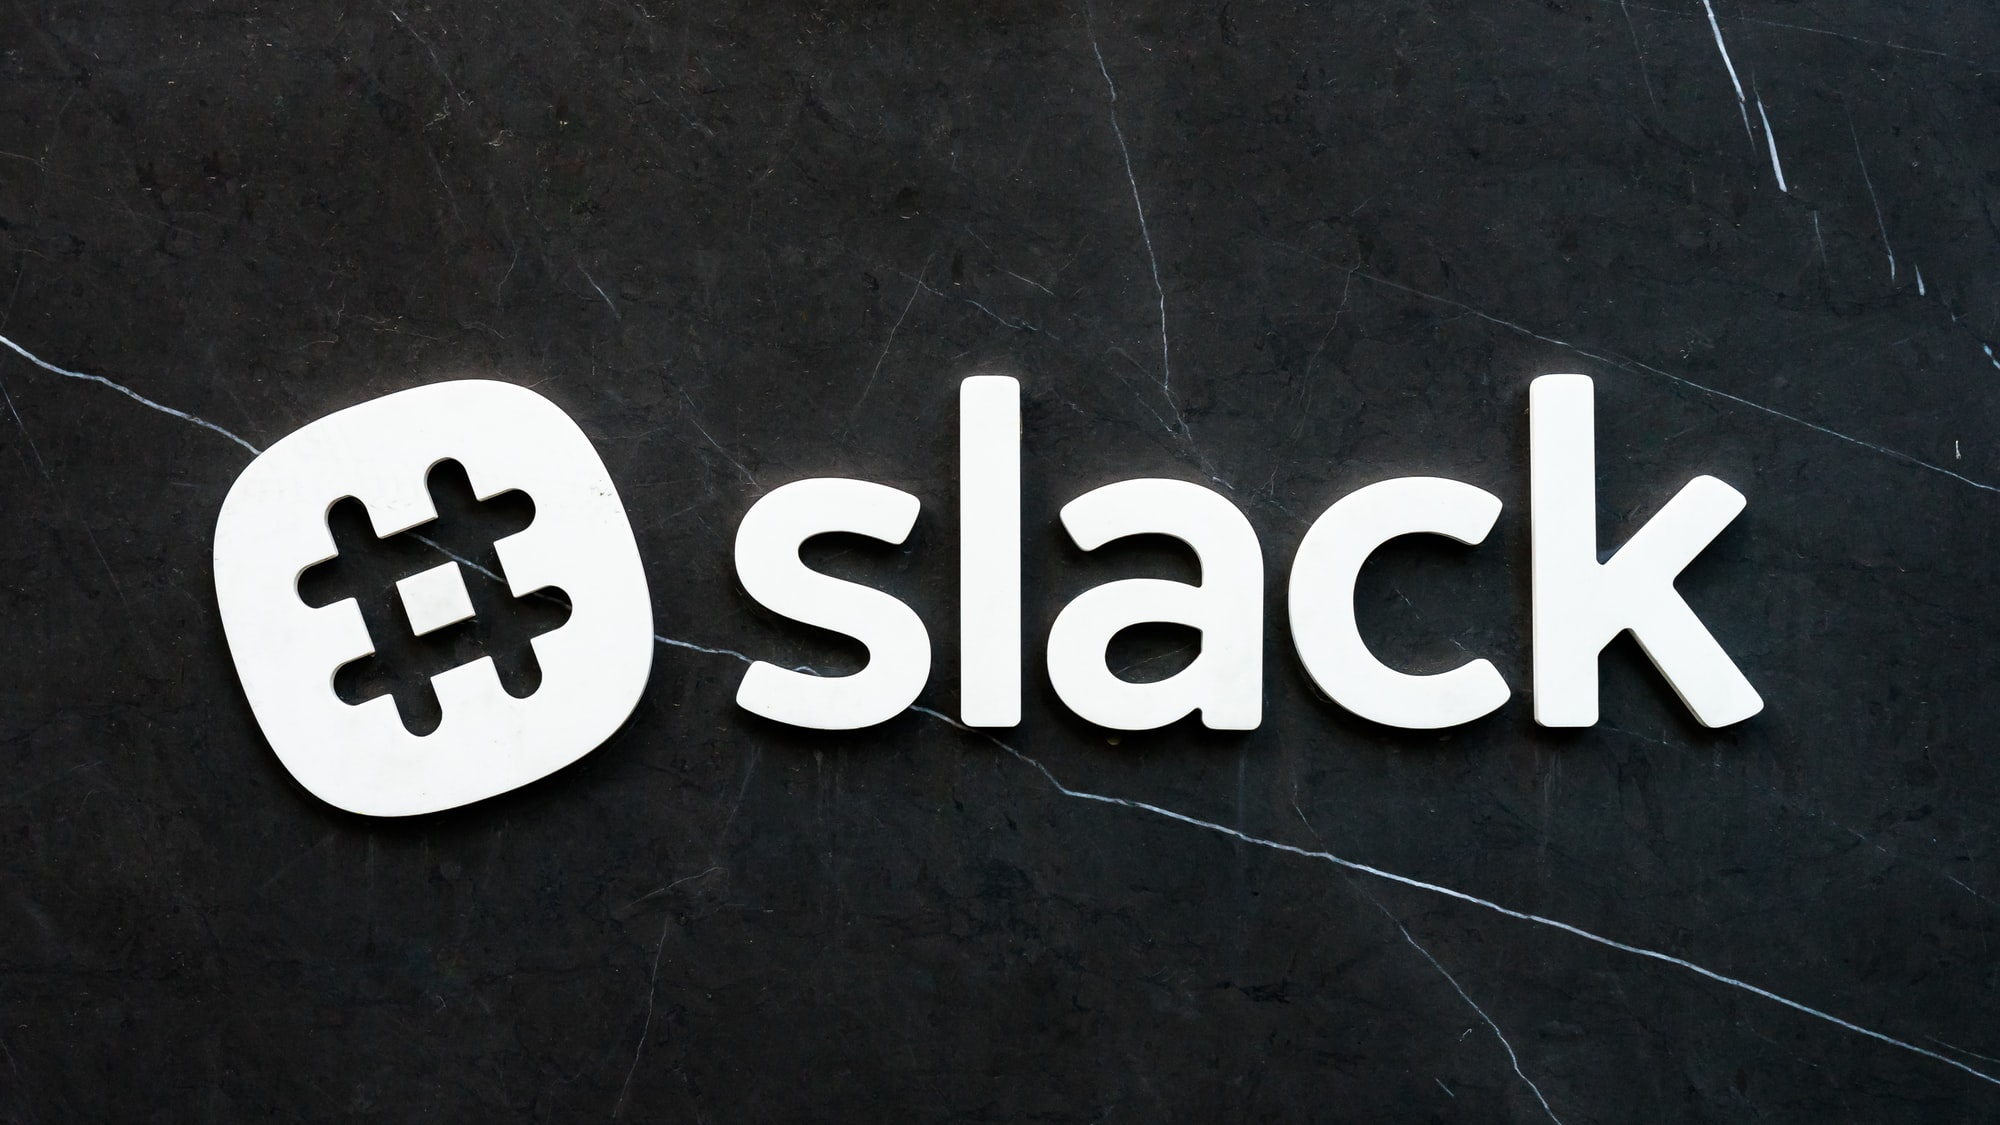 How to change your font in Slack